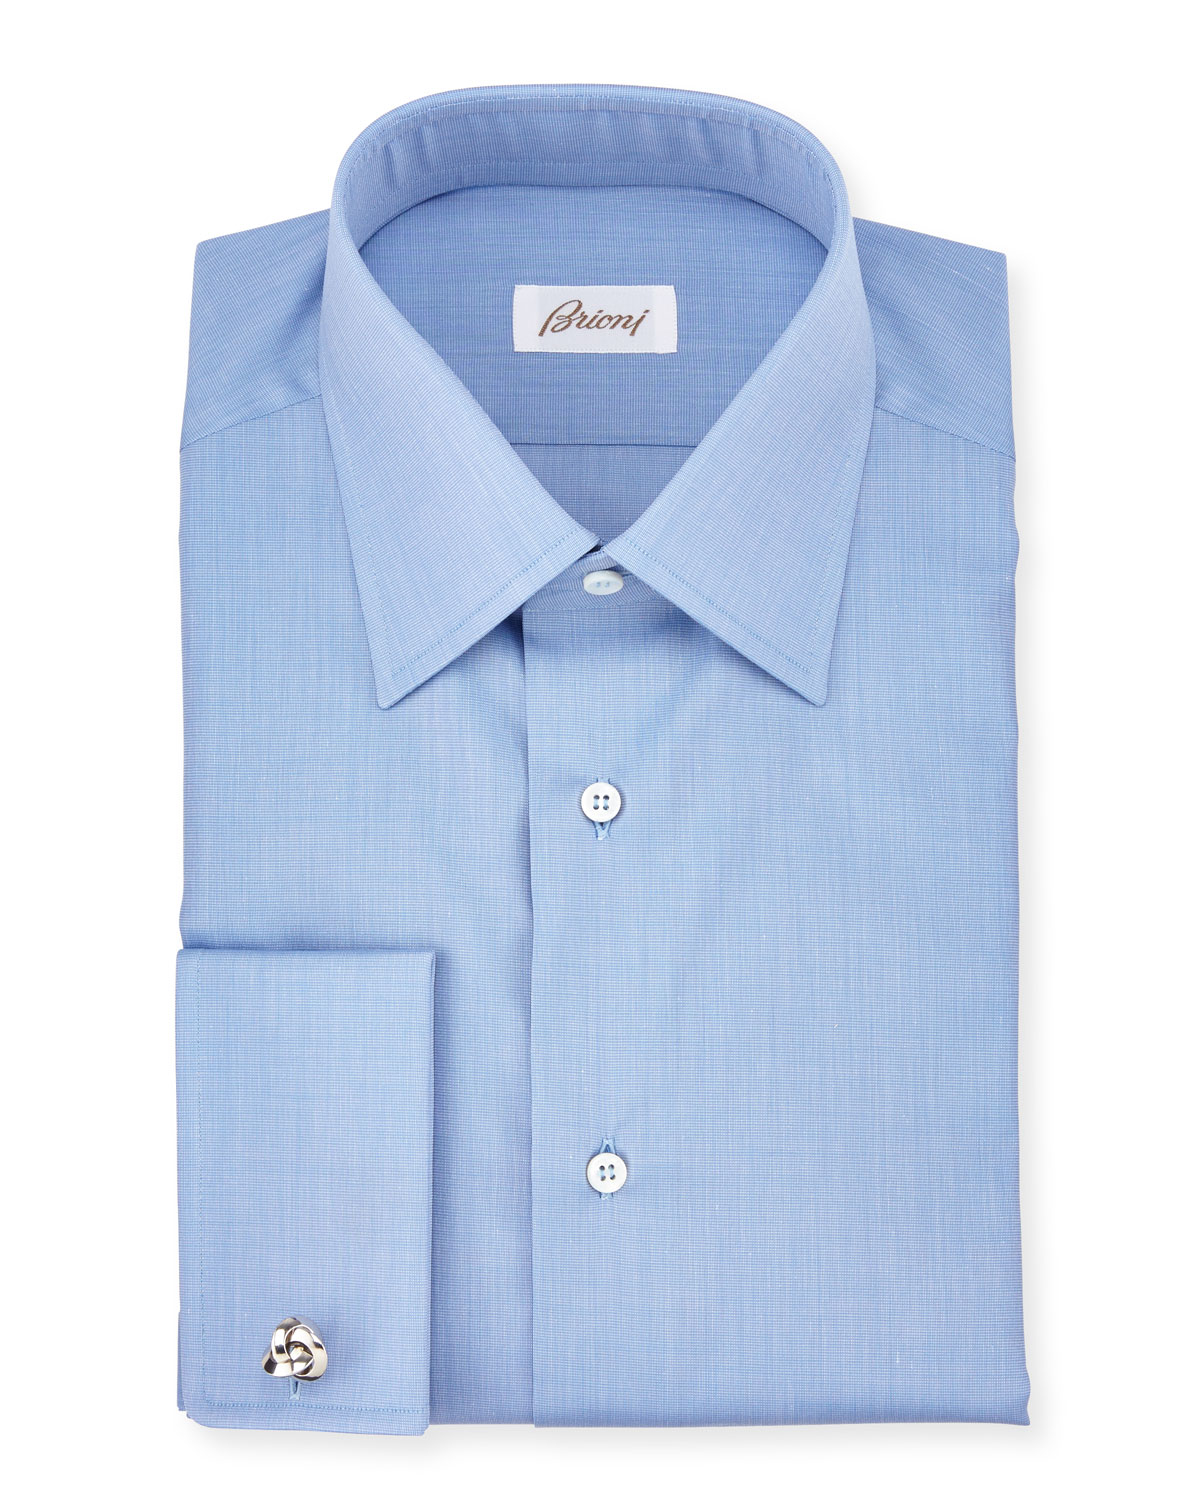 Brioni end on end french cuff dress shirt in blue for men for Cuff shirts for men